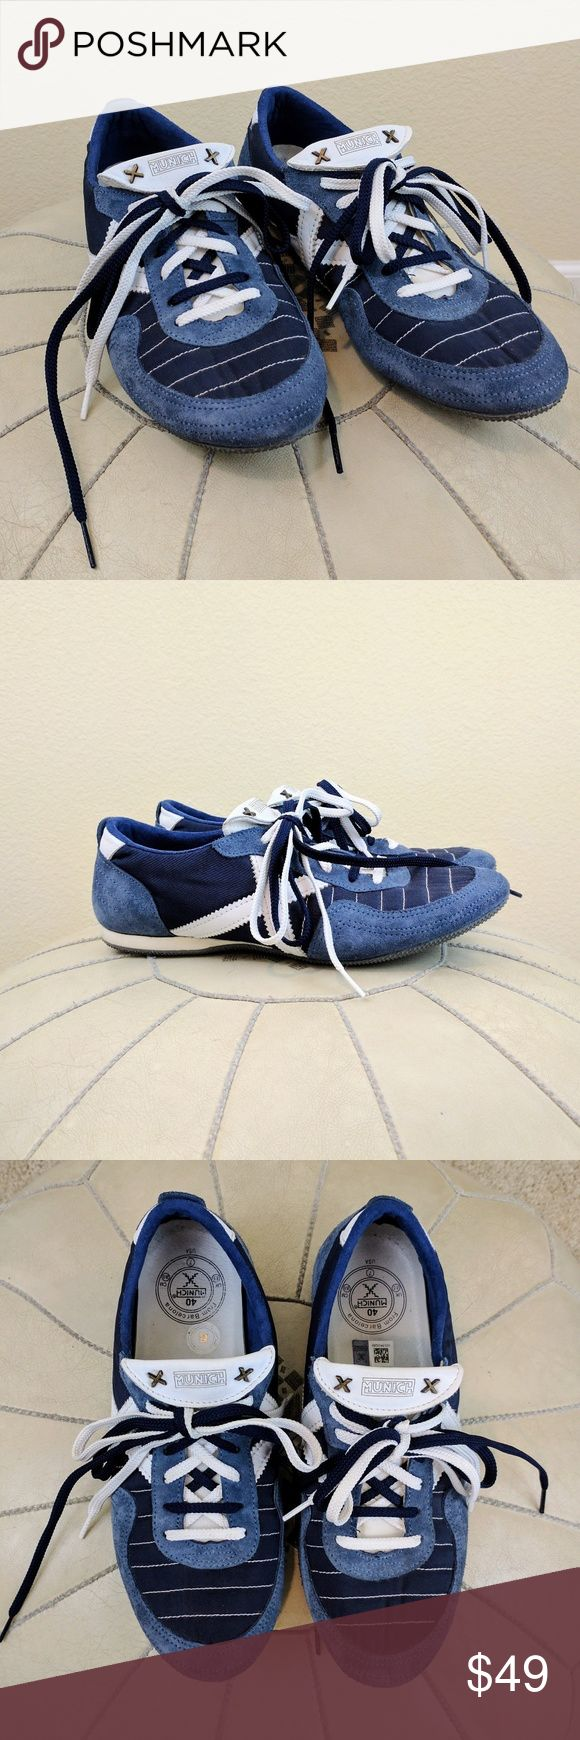 Munich From Barcelona Blue and White Trainers Sz7 These blue and white sneakers by Munich from Barcelona are in excellent condition. They feature double laces and blue suede and nylon with a white crosshatch on the side. Sz 7 men's. Munich   Shoes Athletic Shoes